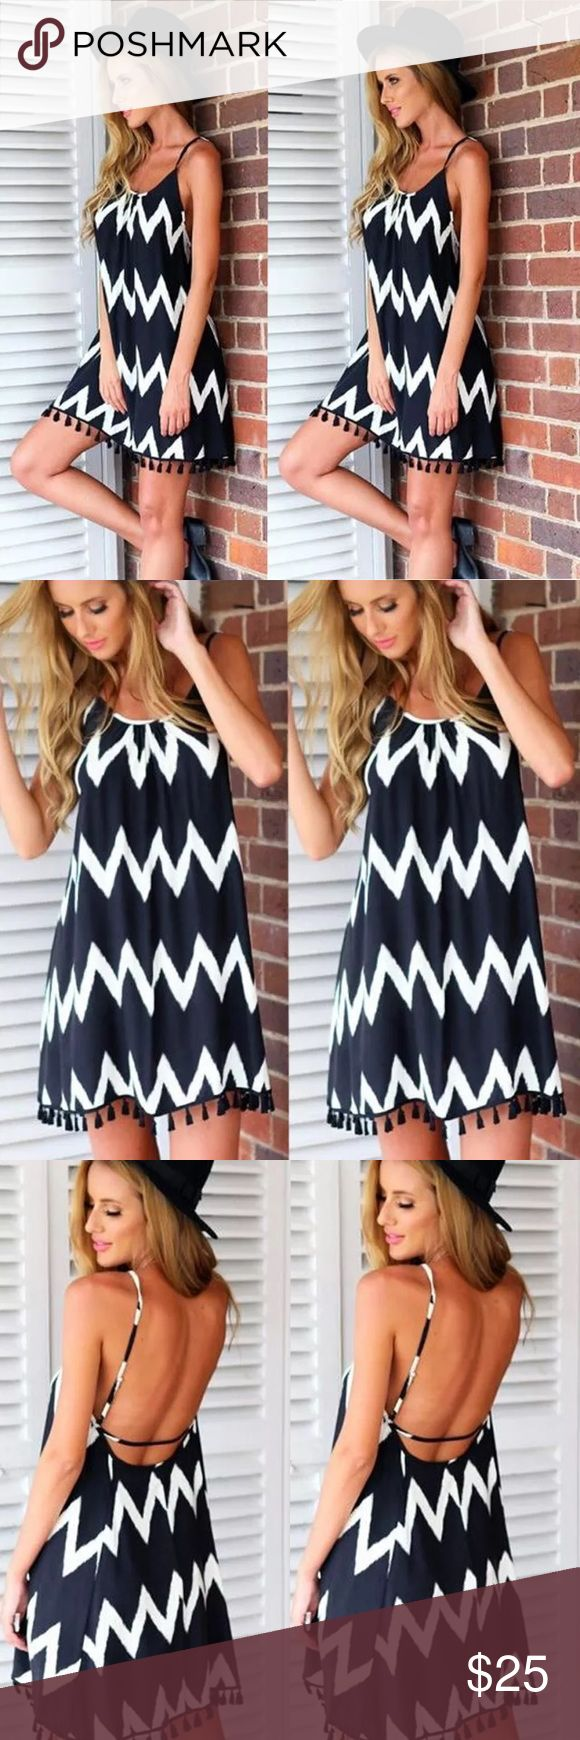 COMING SOON✨ Beautiful Black and White Summer Beach Dress. Light, comfortable, and sassy! The dress has fringes on the bottom which give it a unique look! Absolutely gorgeous dress! Dresses Mini